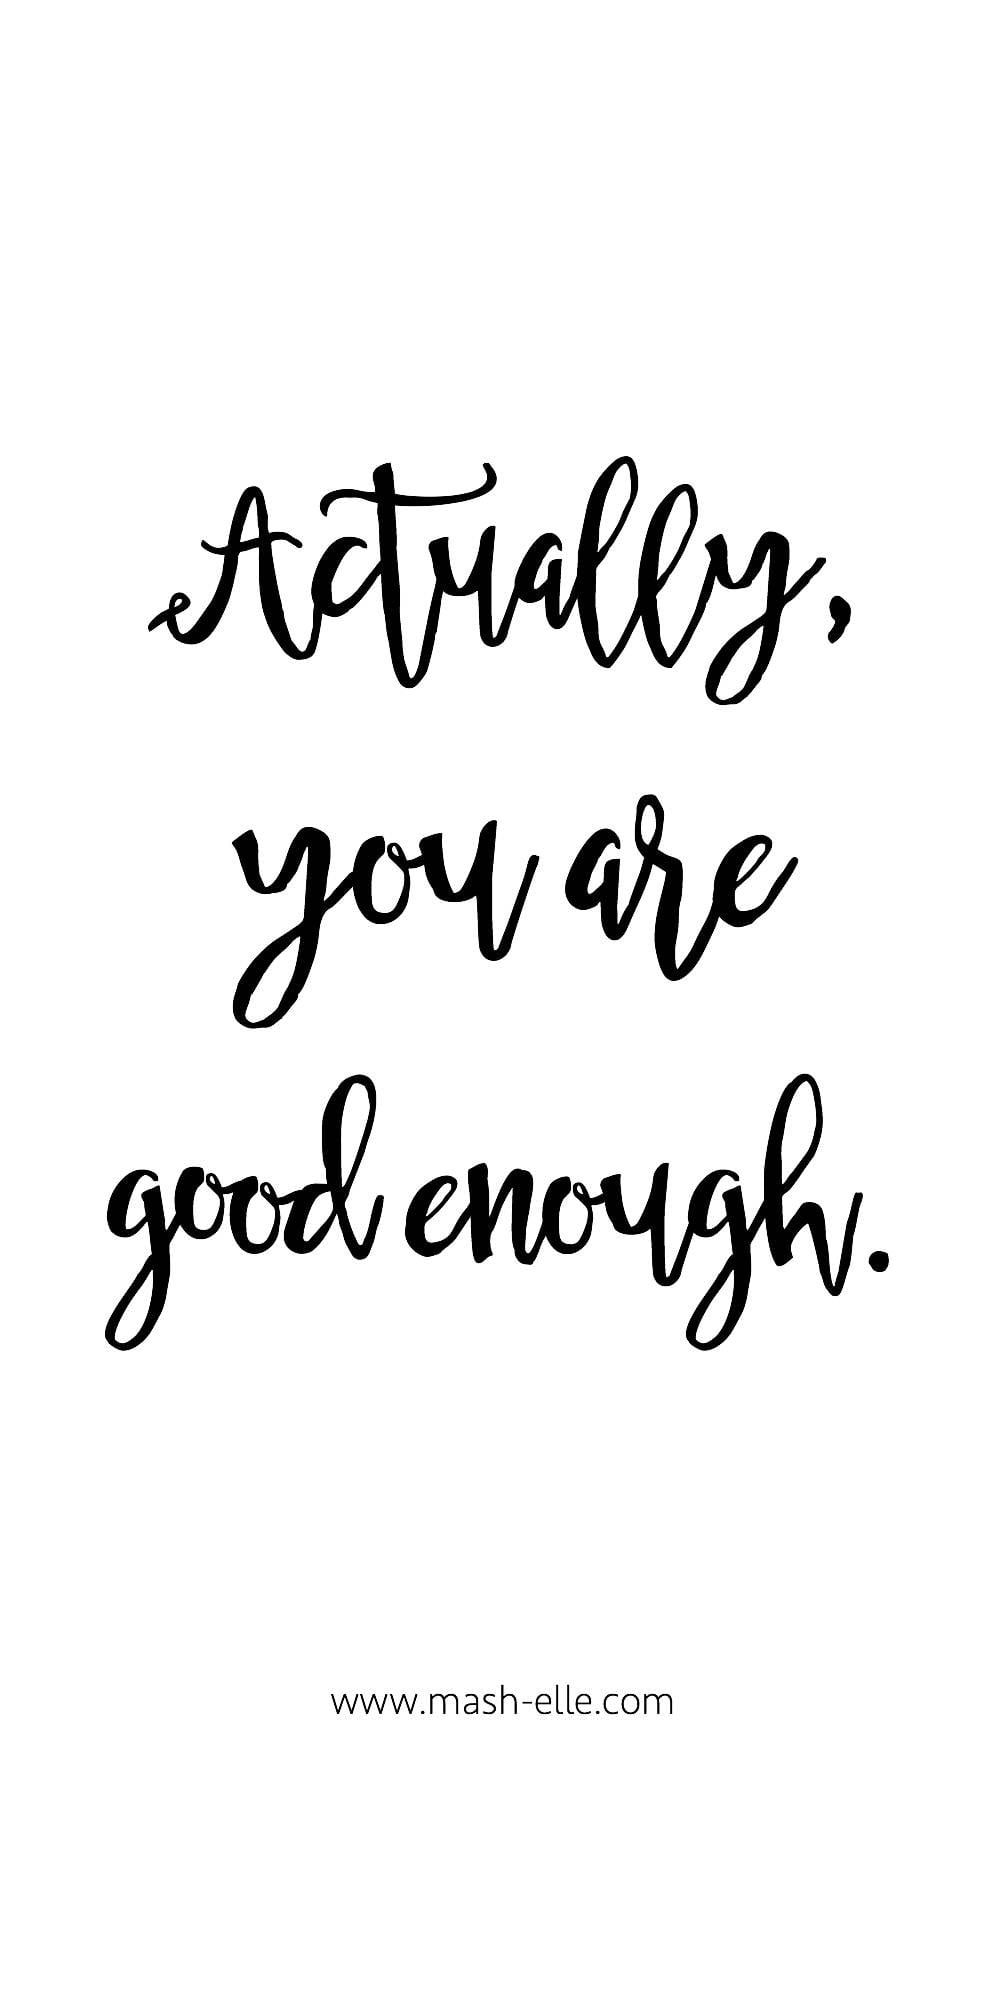 Strength Quotes You Need for Your Wallpaper | Mash Elle